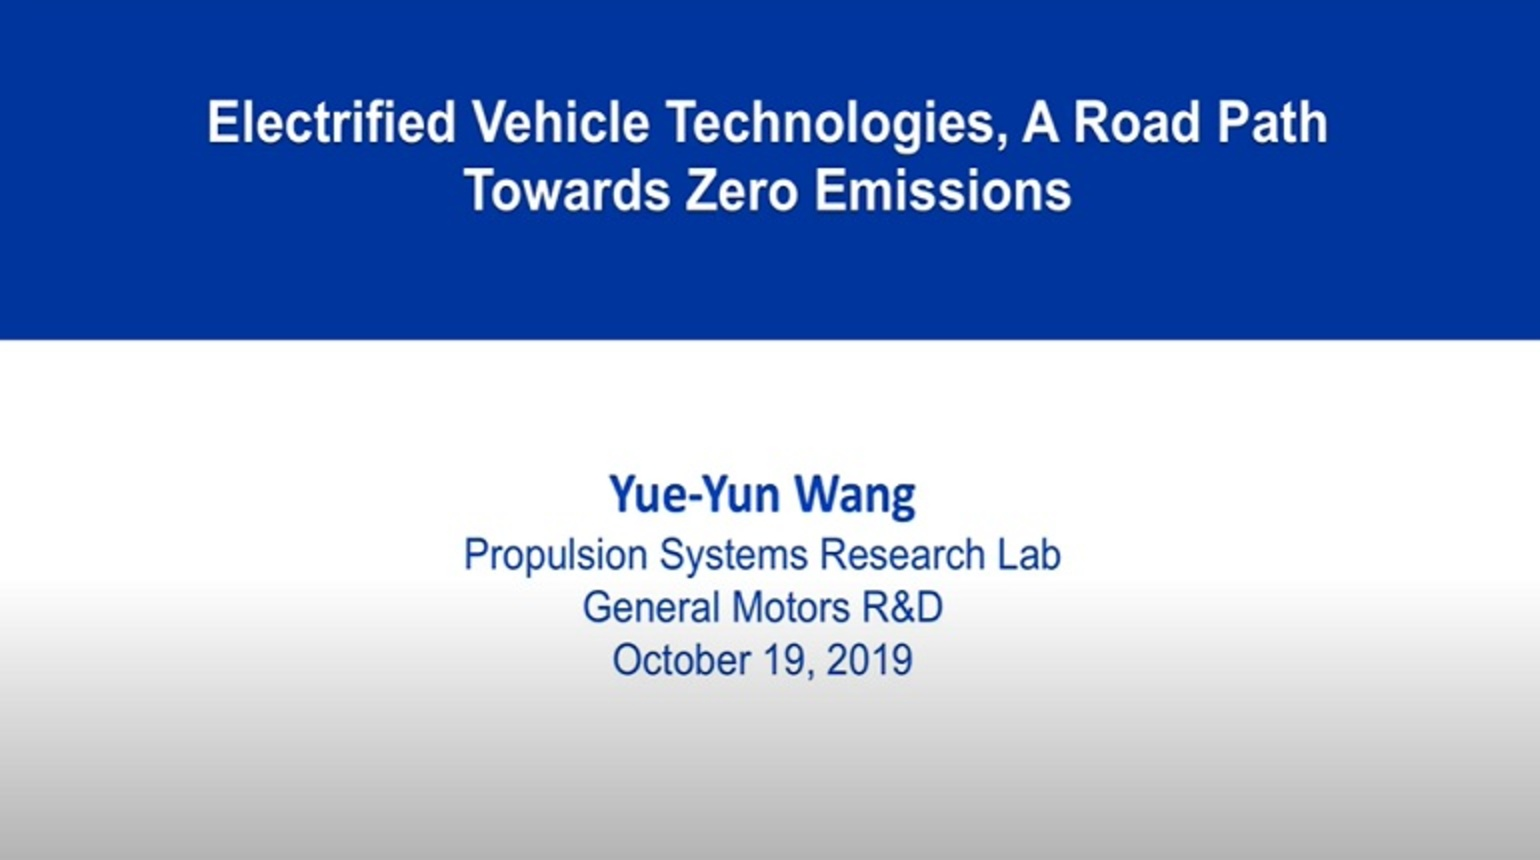 Electrified Vehicle Technologies, A Road Path Towards Zero Emissions